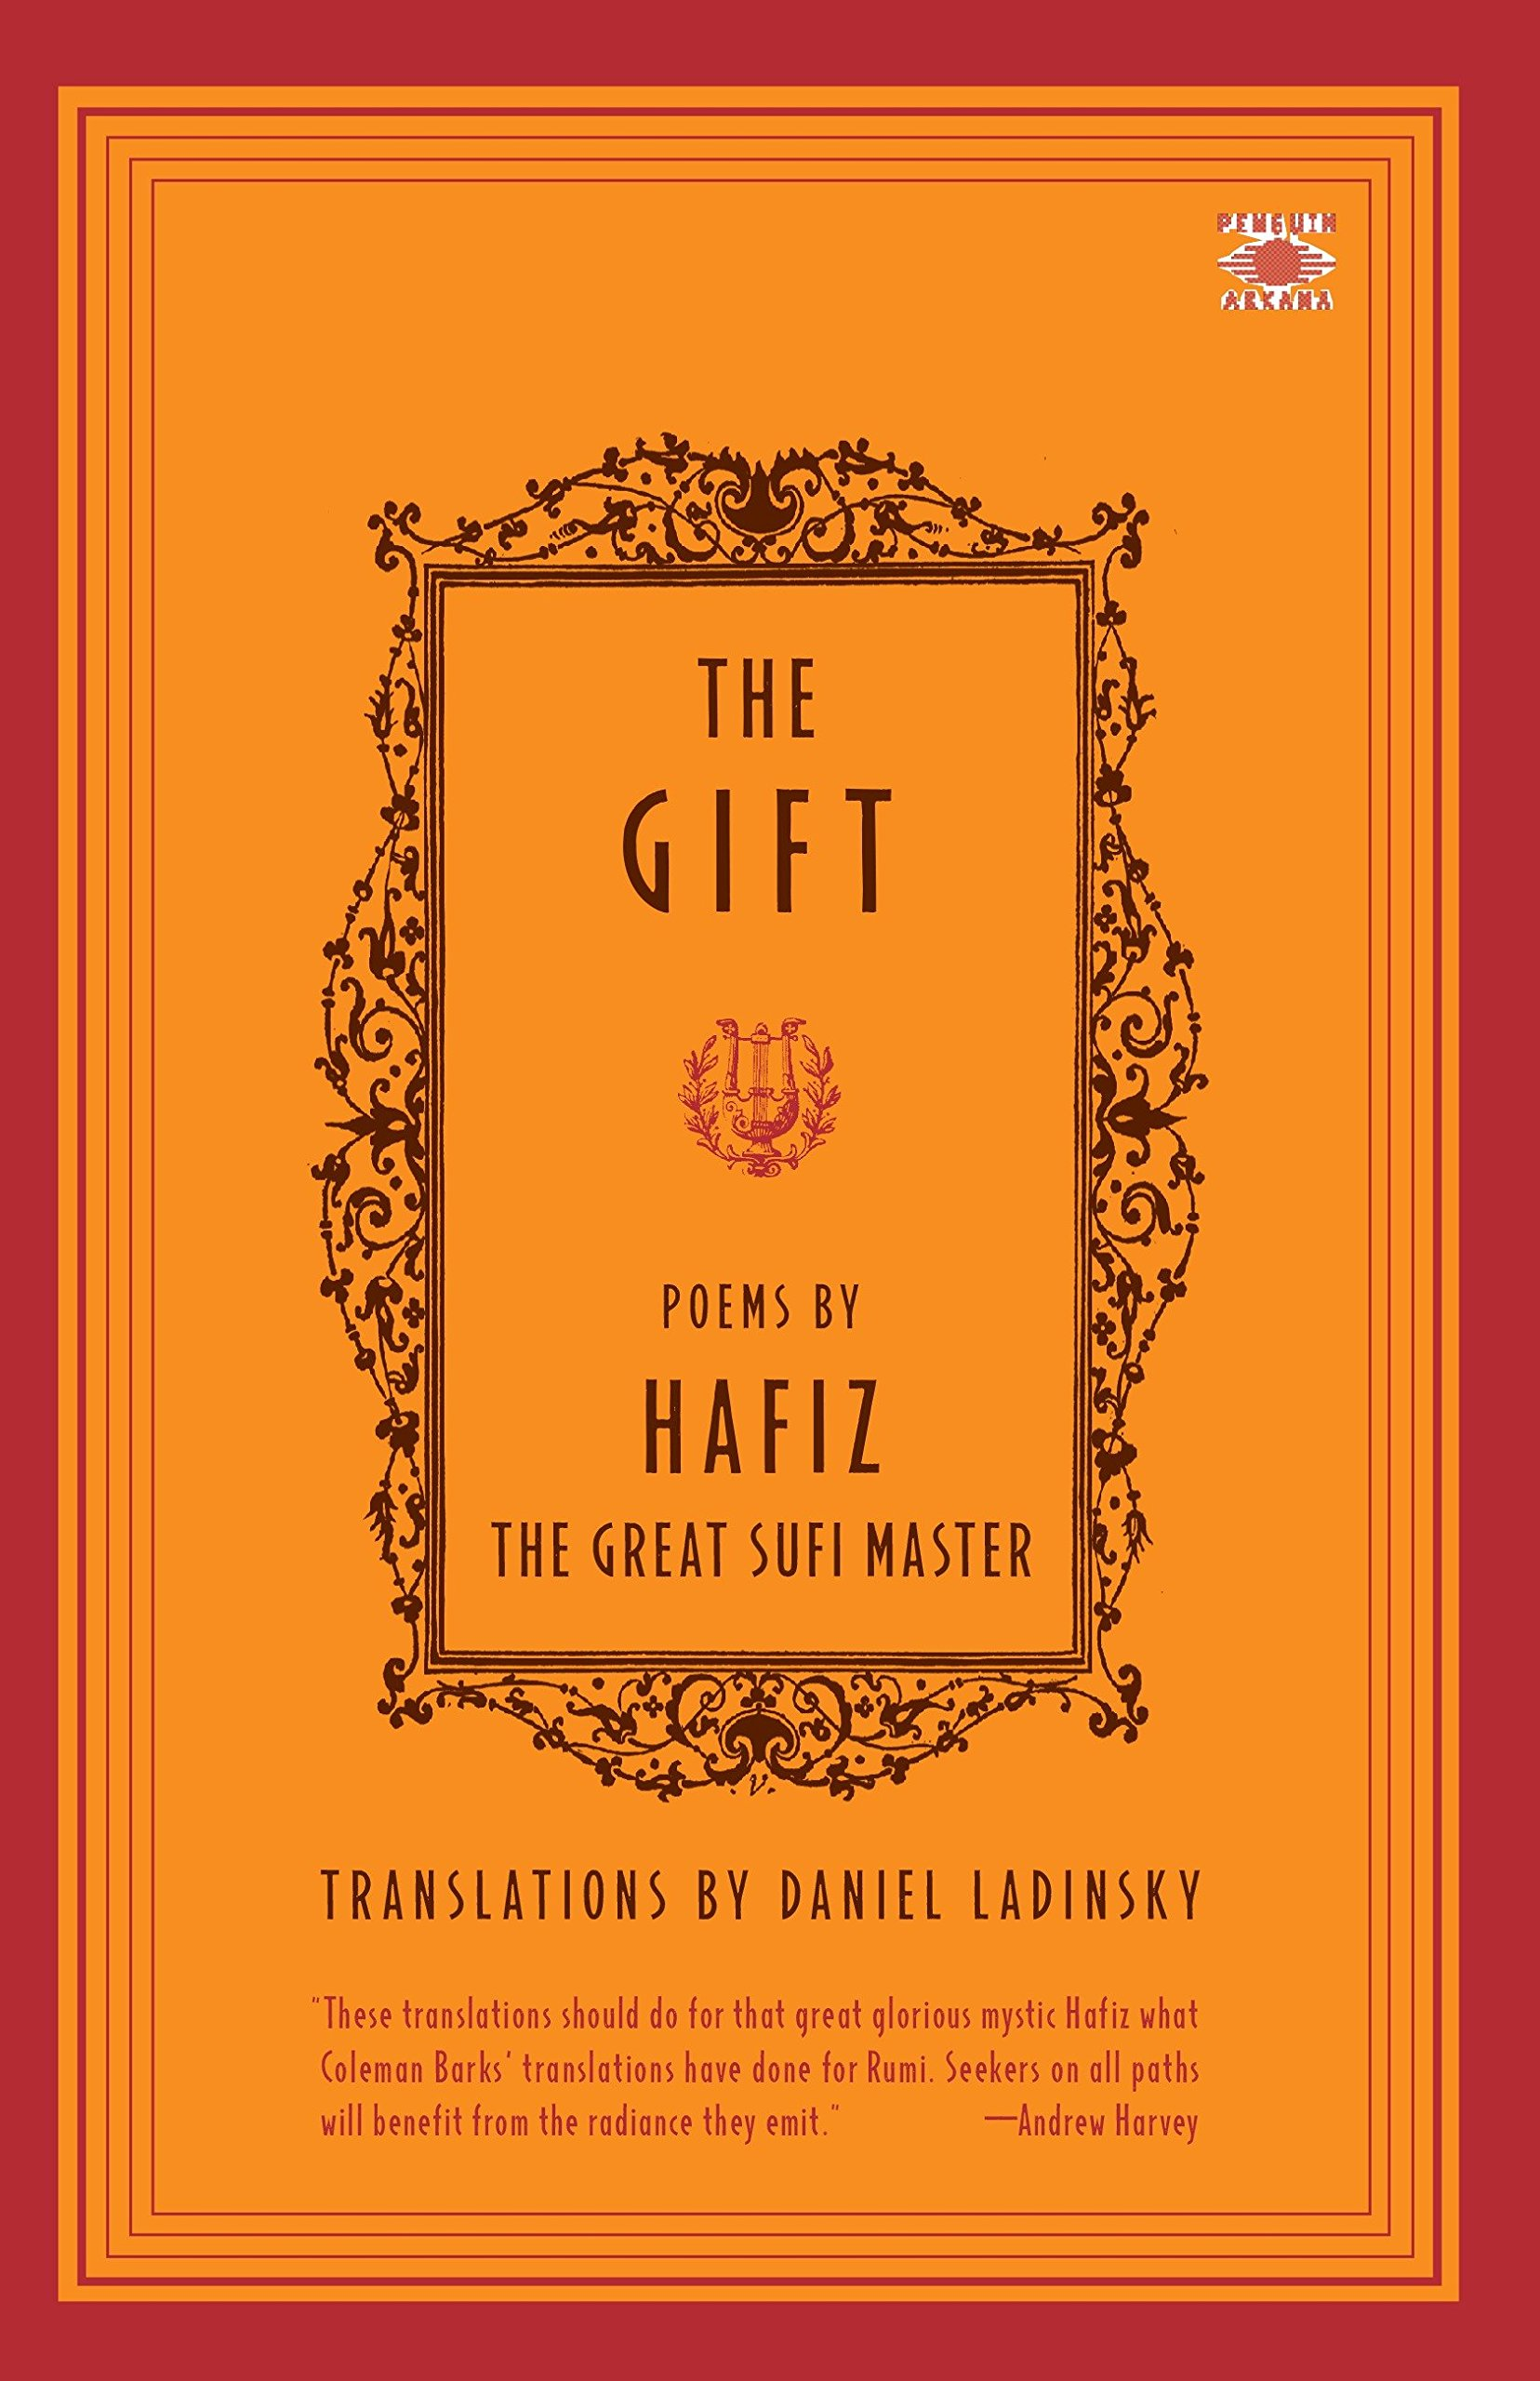 Buy The Gift: Poems by Hafiz, the Great Sufi Master (Compass) Book Online  at Low Prices in India | The Gift: Poems by Hafiz, the Great Sufi Master  (Compass) ...